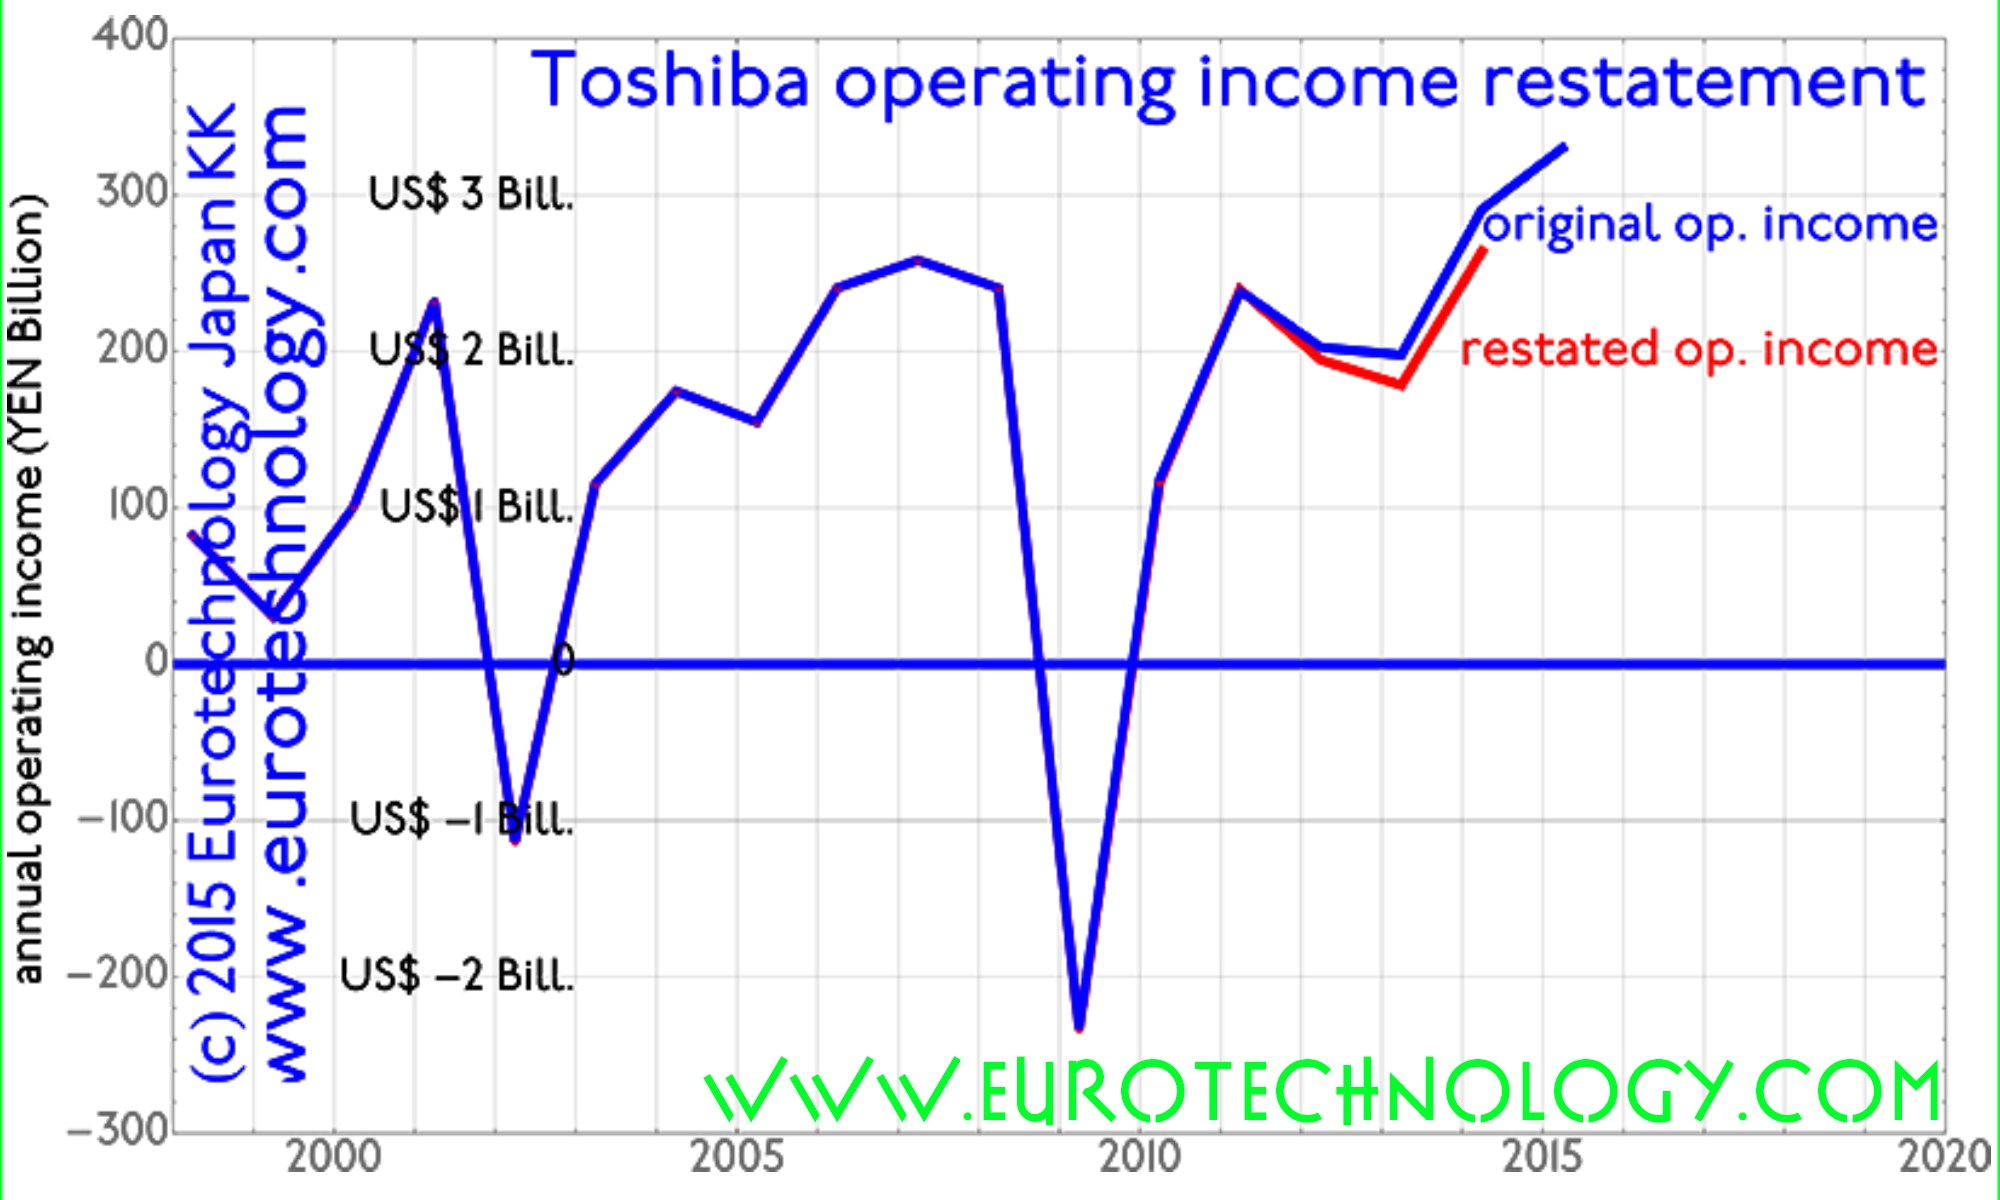 Toshiba accounting restatements in context